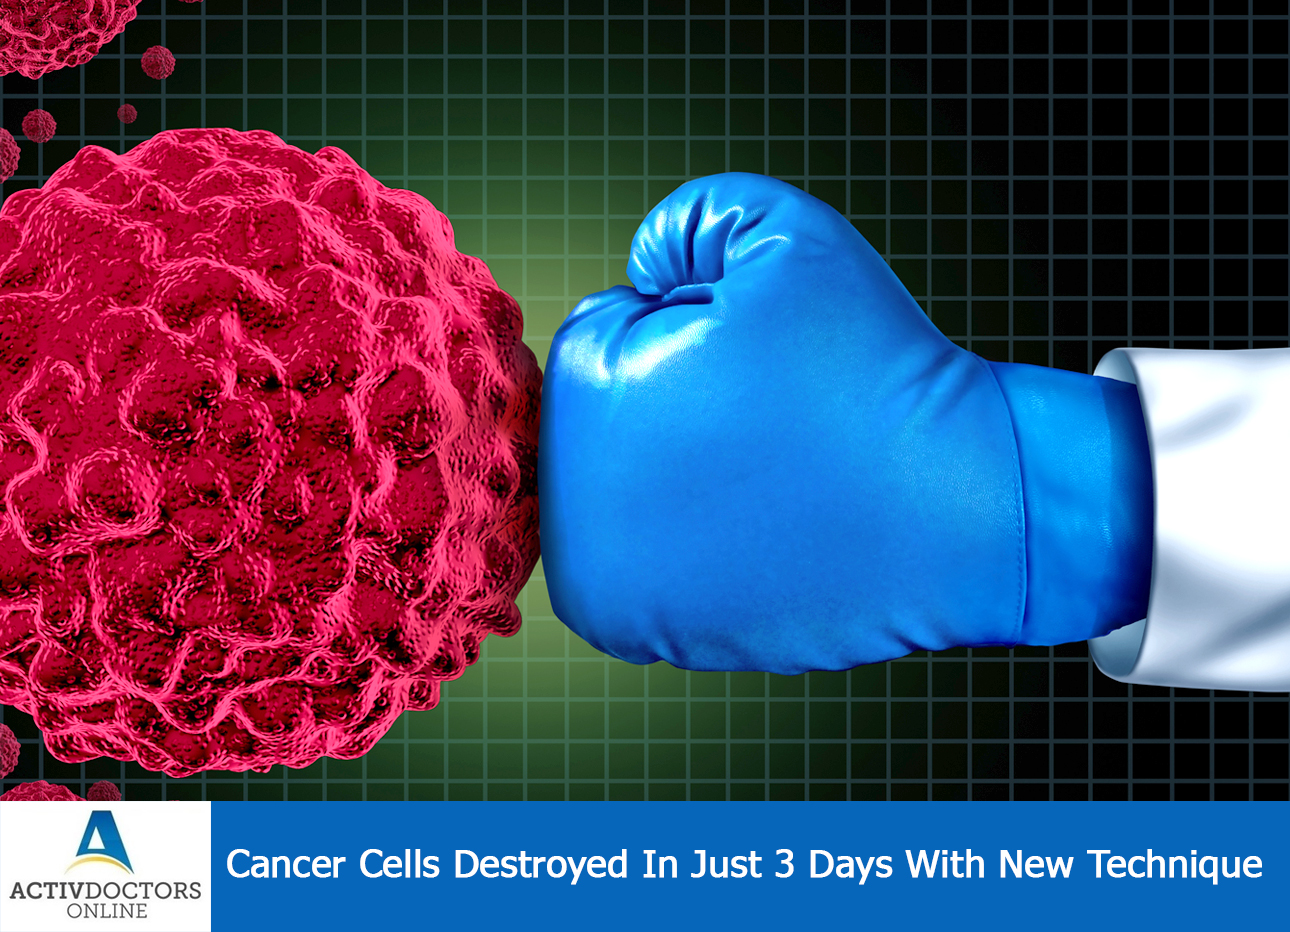 Cancer Cells Destroyed In Just 3 Days With New Technique